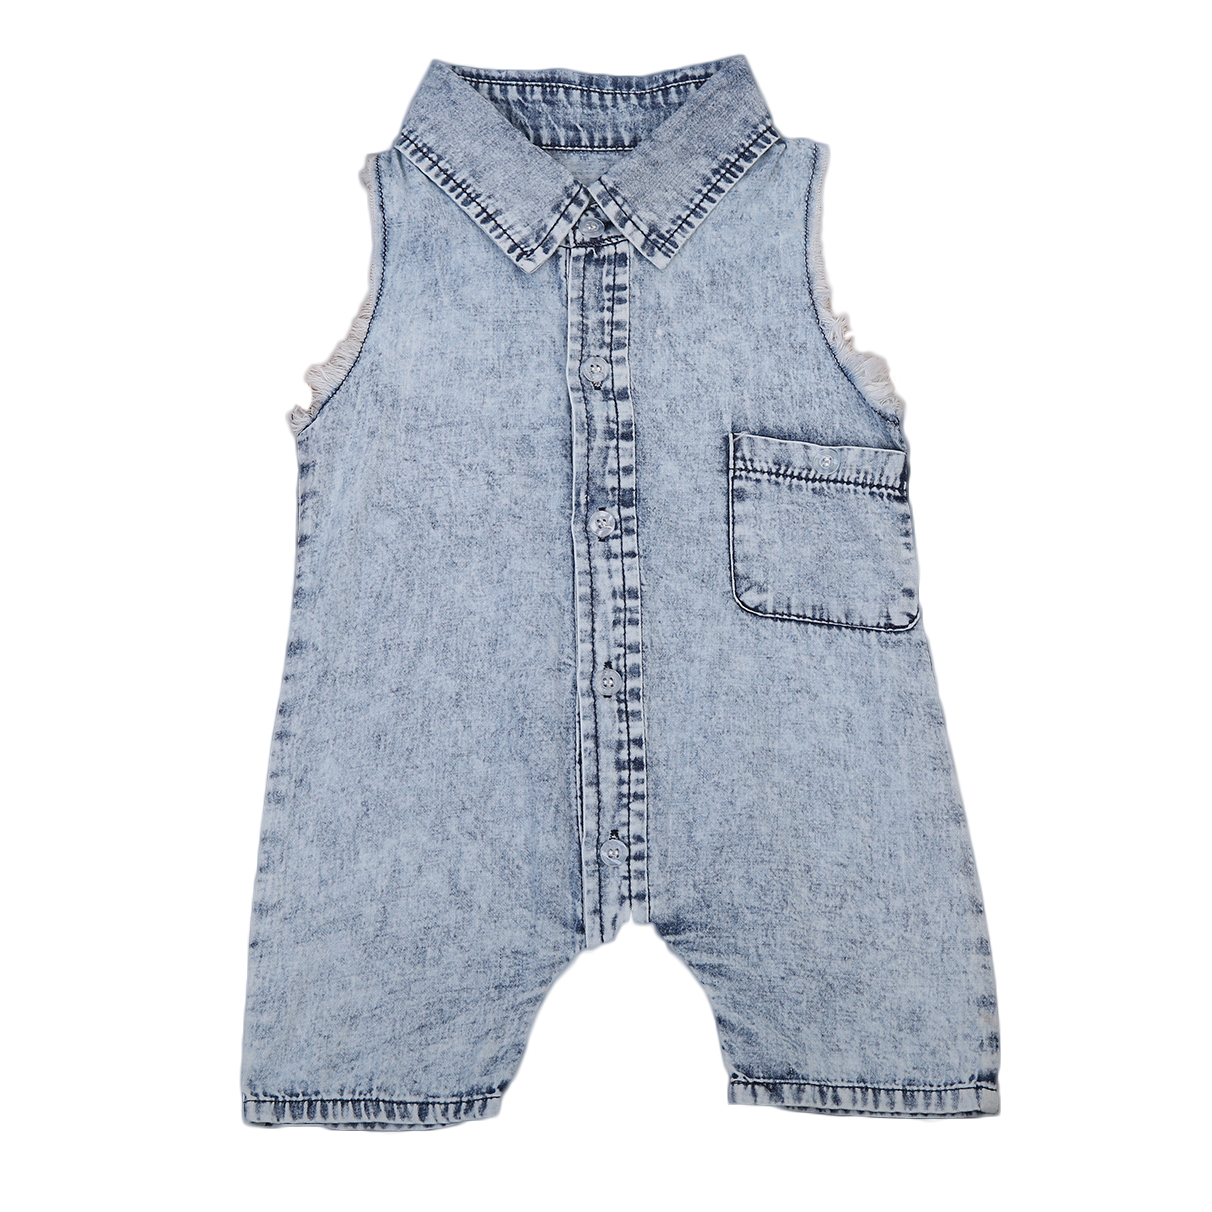 Cute Newborn Toddler Infant Baby Girl Sleeveless Denim Romper Jumpsuit Outfit Sunsuit Clothes 2017 cute newborn baby girl floral romper summer toddler kids jumpsuit outfits sunsuit one pieces baby clothes